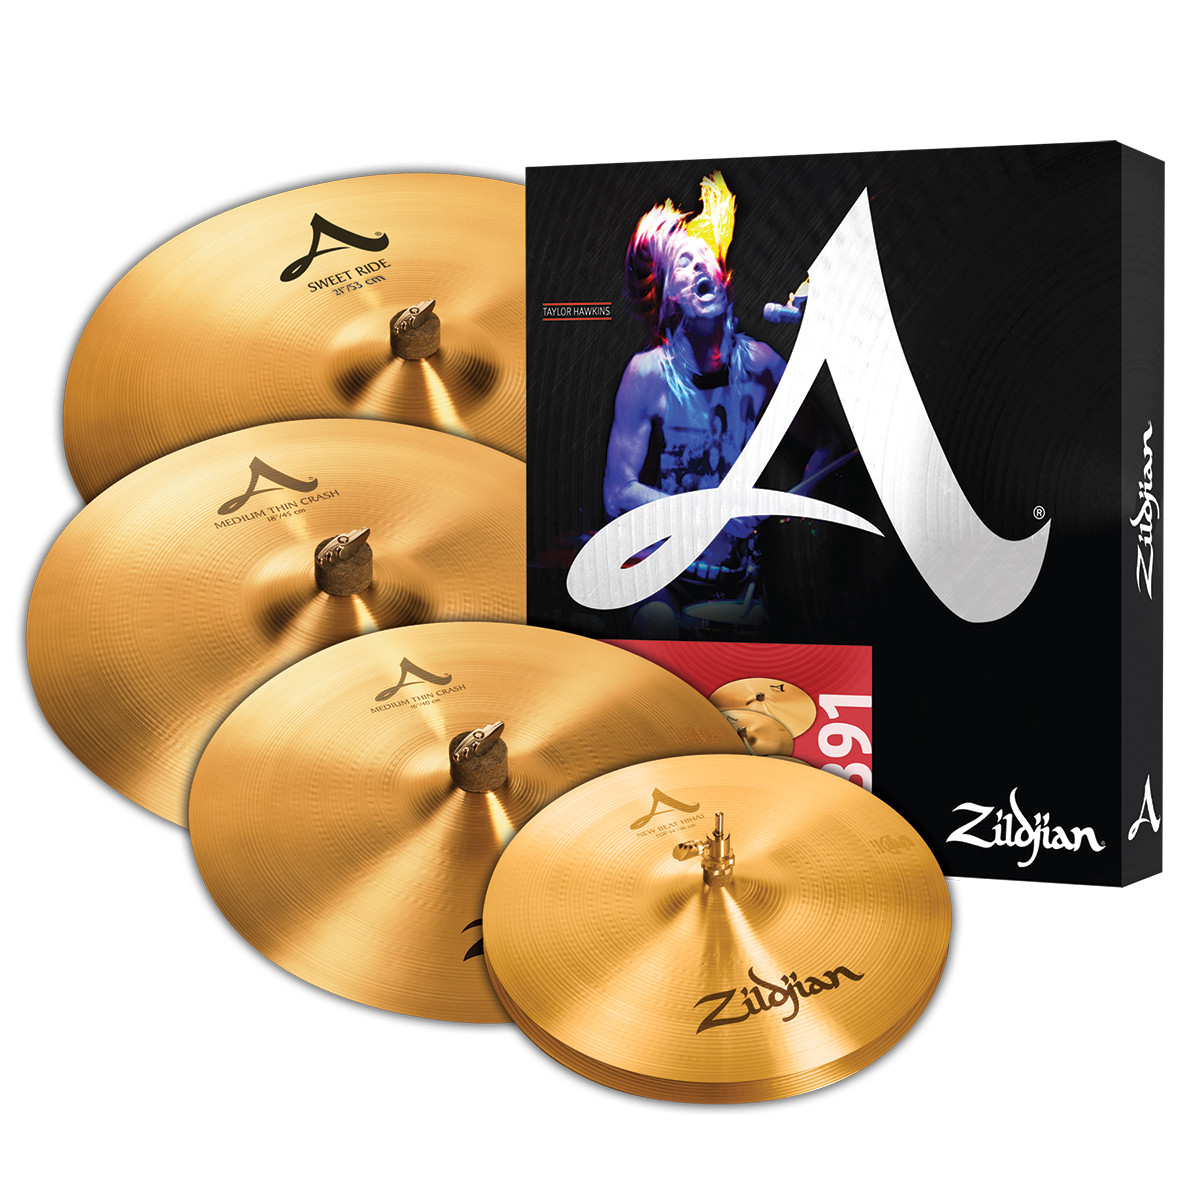 zildjian a zildjian series cymbal pack free 18 crash. Black Bedroom Furniture Sets. Home Design Ideas